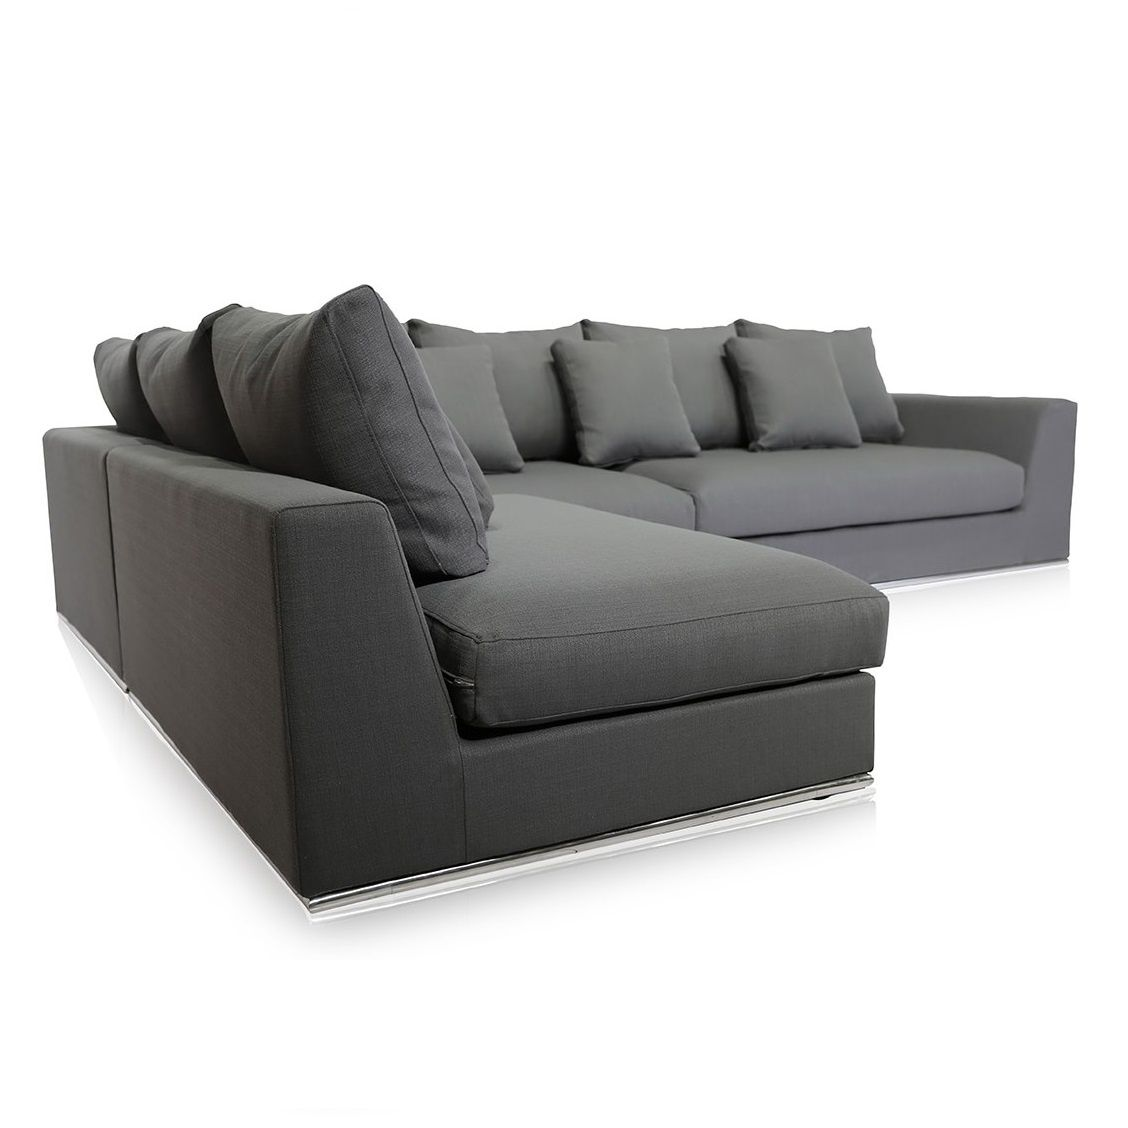 Giovani Fabric Contemporary Sofa Gray Modular Couch Furniture